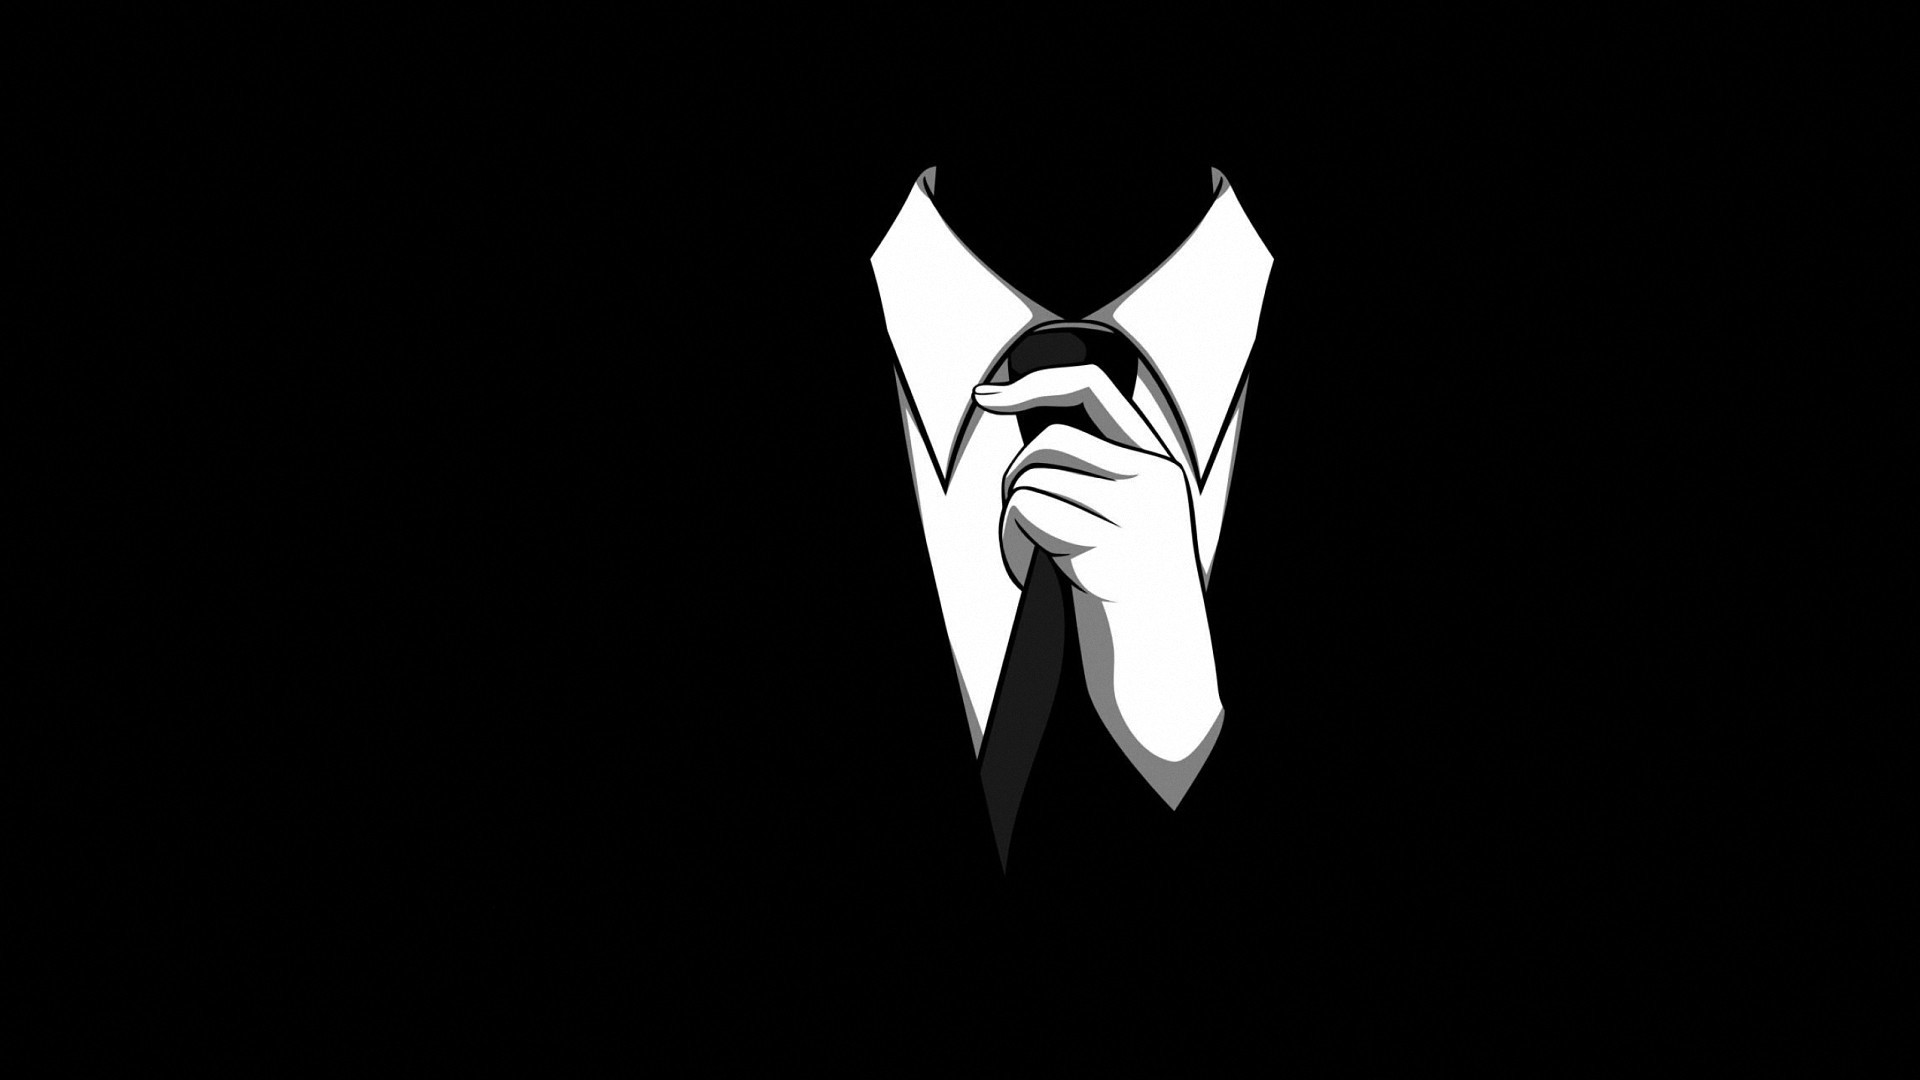 1920x1080 Amazing Black And White Wallpapers 15 Cool Hd Wallpaper